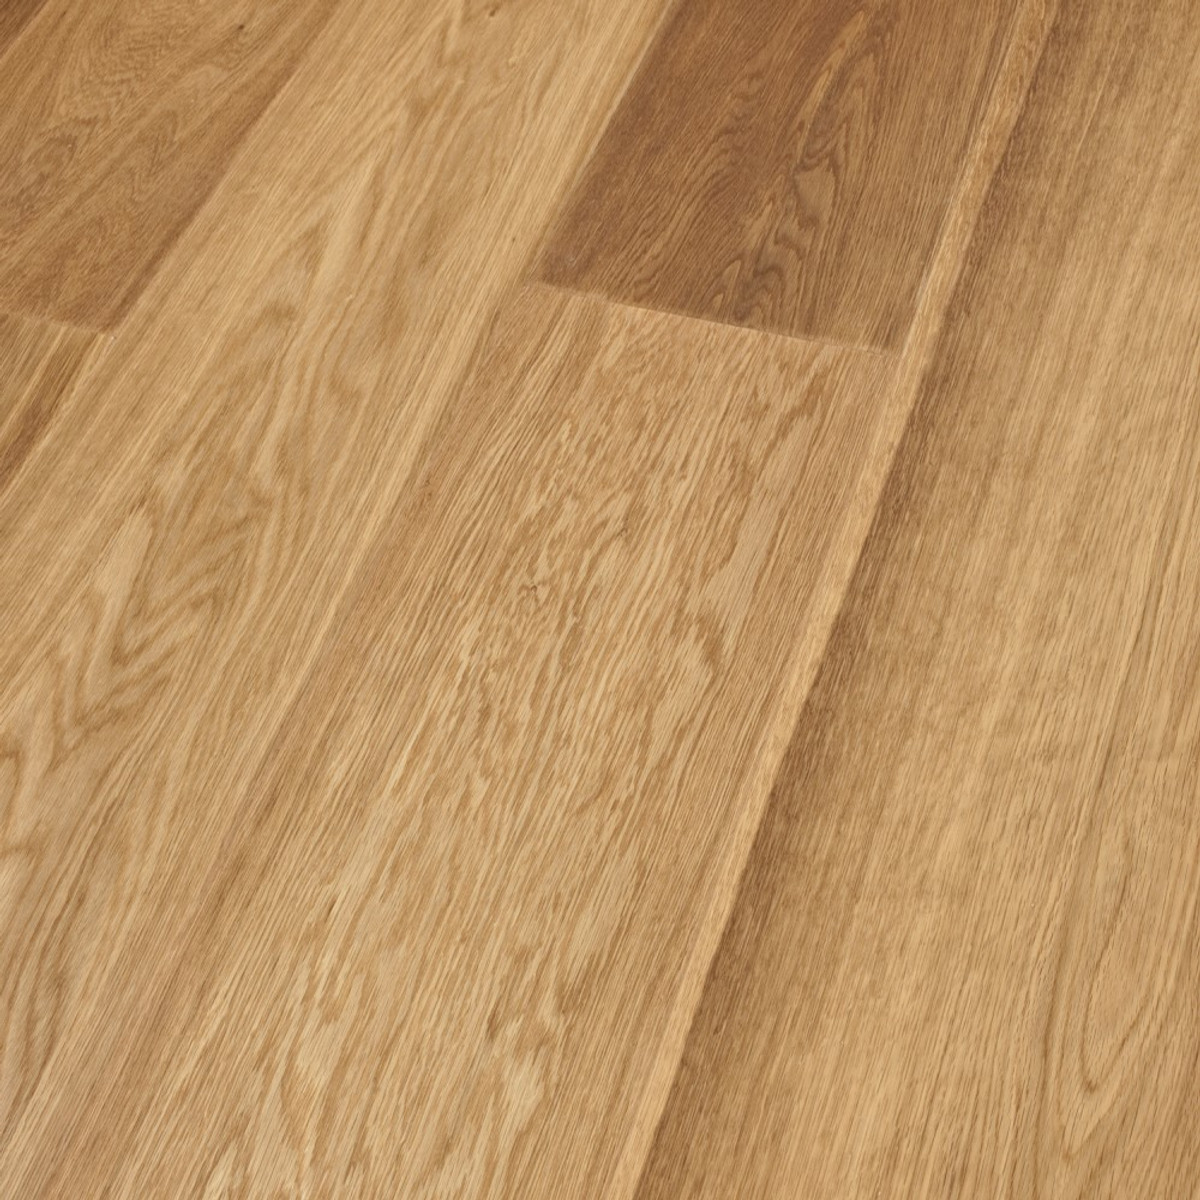 Tuscany Vermont_Smoked_Brushed_&_Lacquered_14¦3_X240mm Engineered Wood Flooring www.tuscanytiles.co.uk